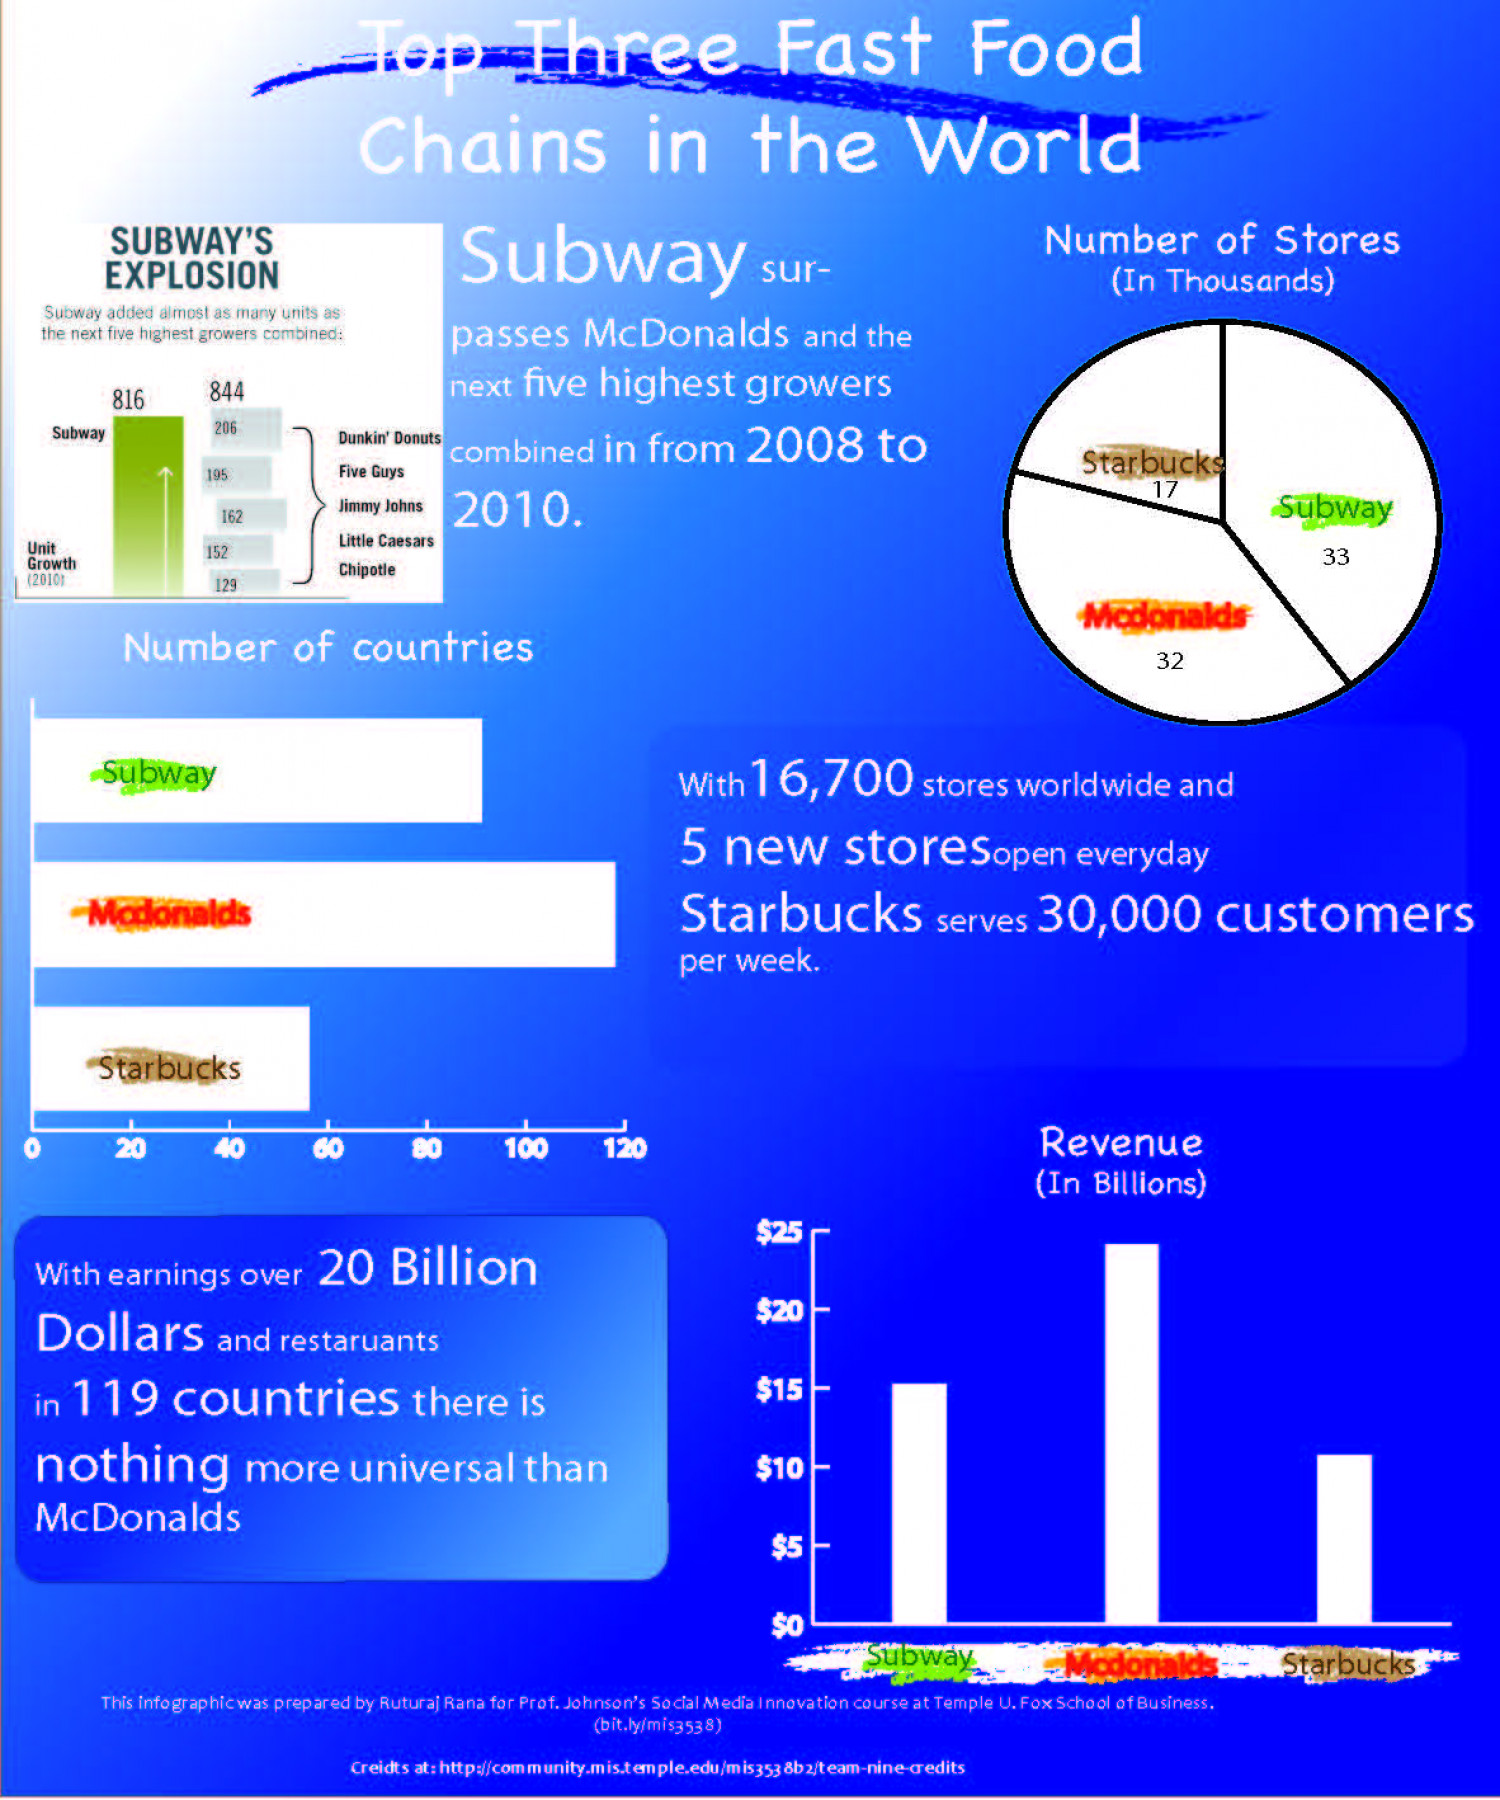 Top 3 Fast Food Chains Infographic